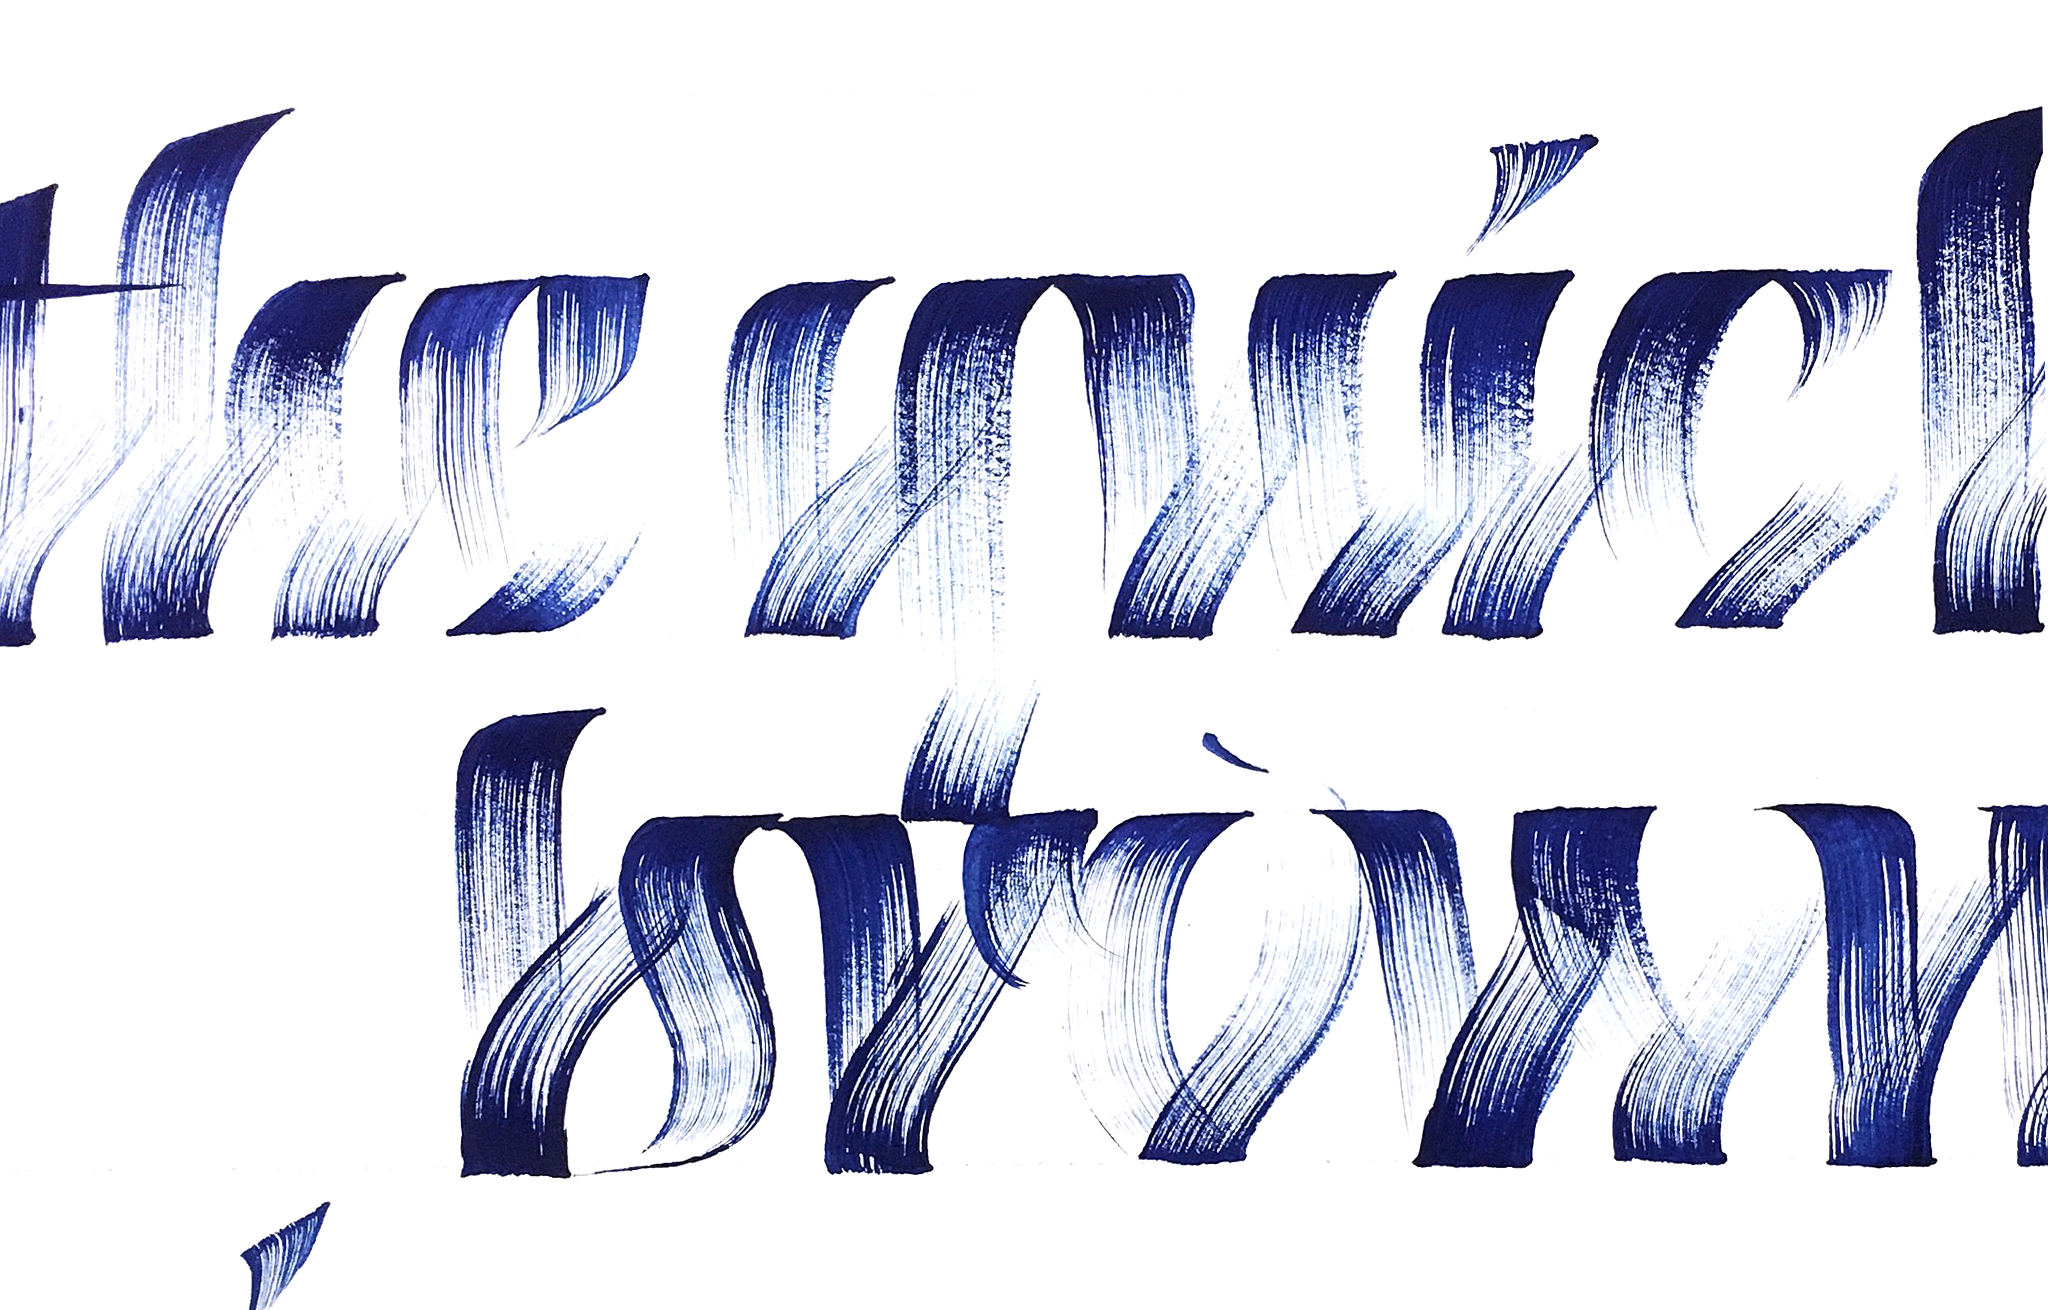 Textured brush calligraphy by Chavelli www.chavelli.com